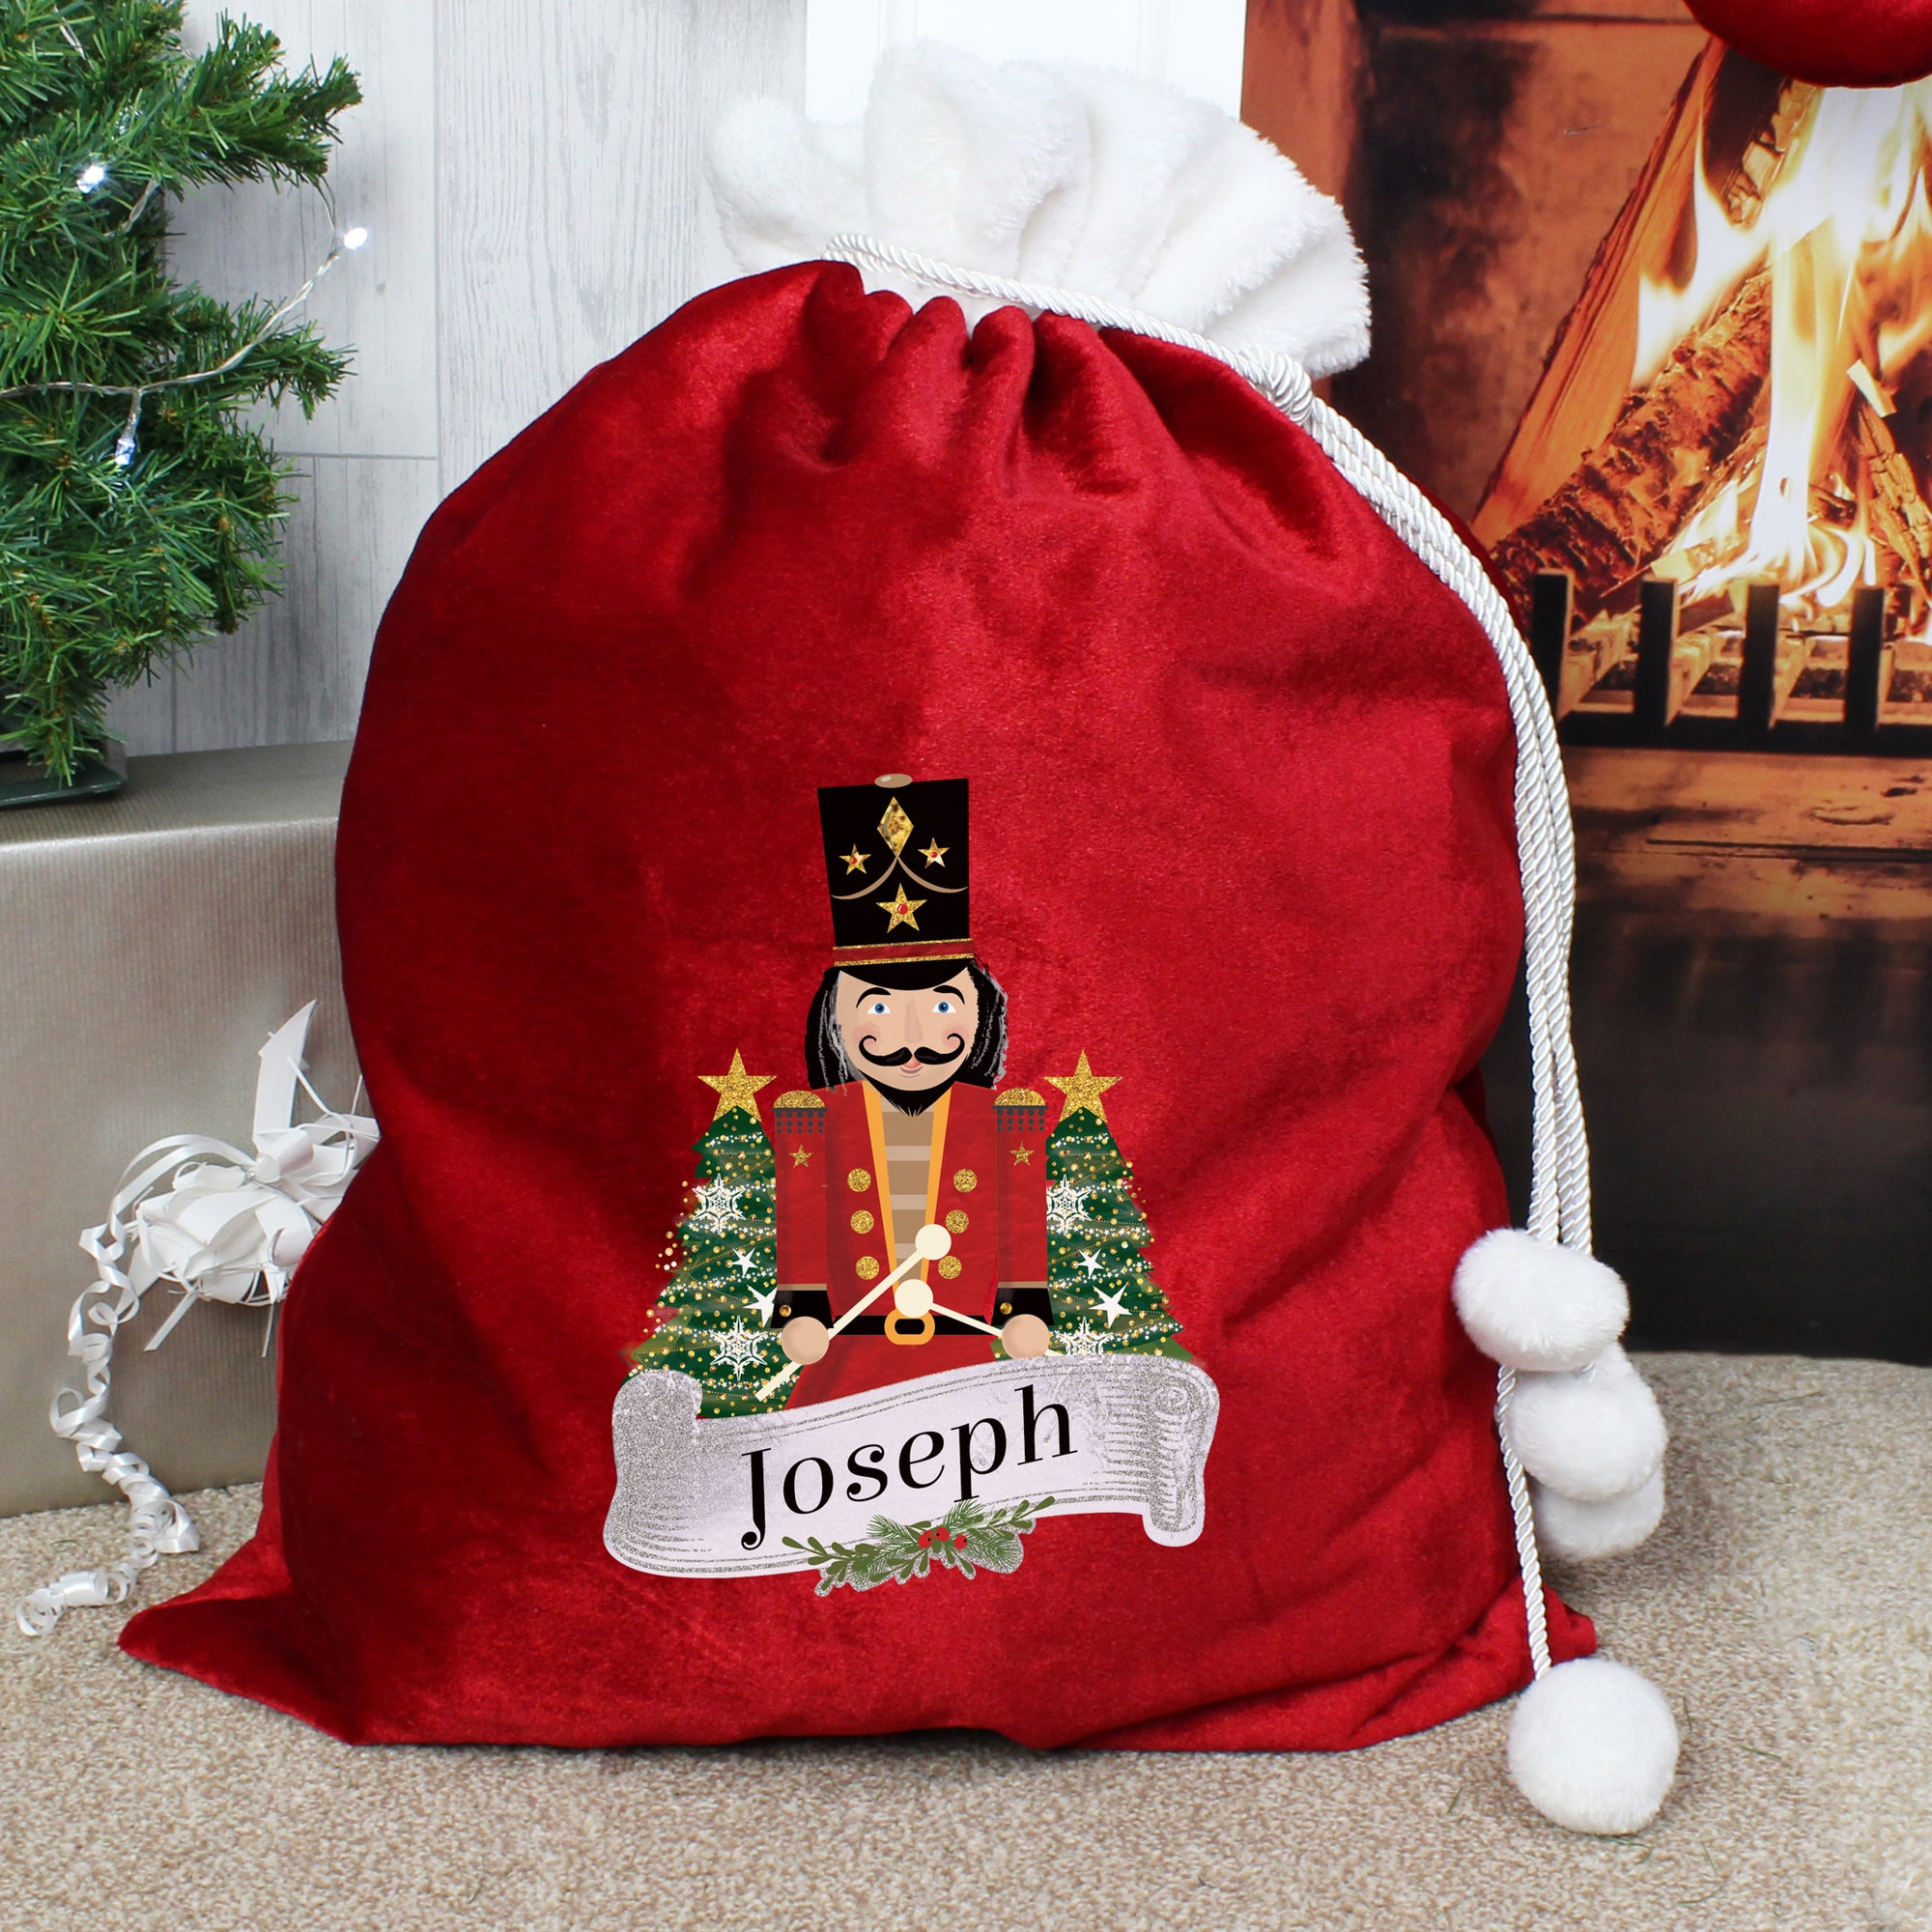 Personalised Christmas present sack made from plush red fleece fabric with a white fur collar. The bag has drawstrings to close it with white pom poms on the end and the front of the sack has an image of a wooden nutcracker toy on it and it can be personalised with a name of your choice of up to 12 characters.